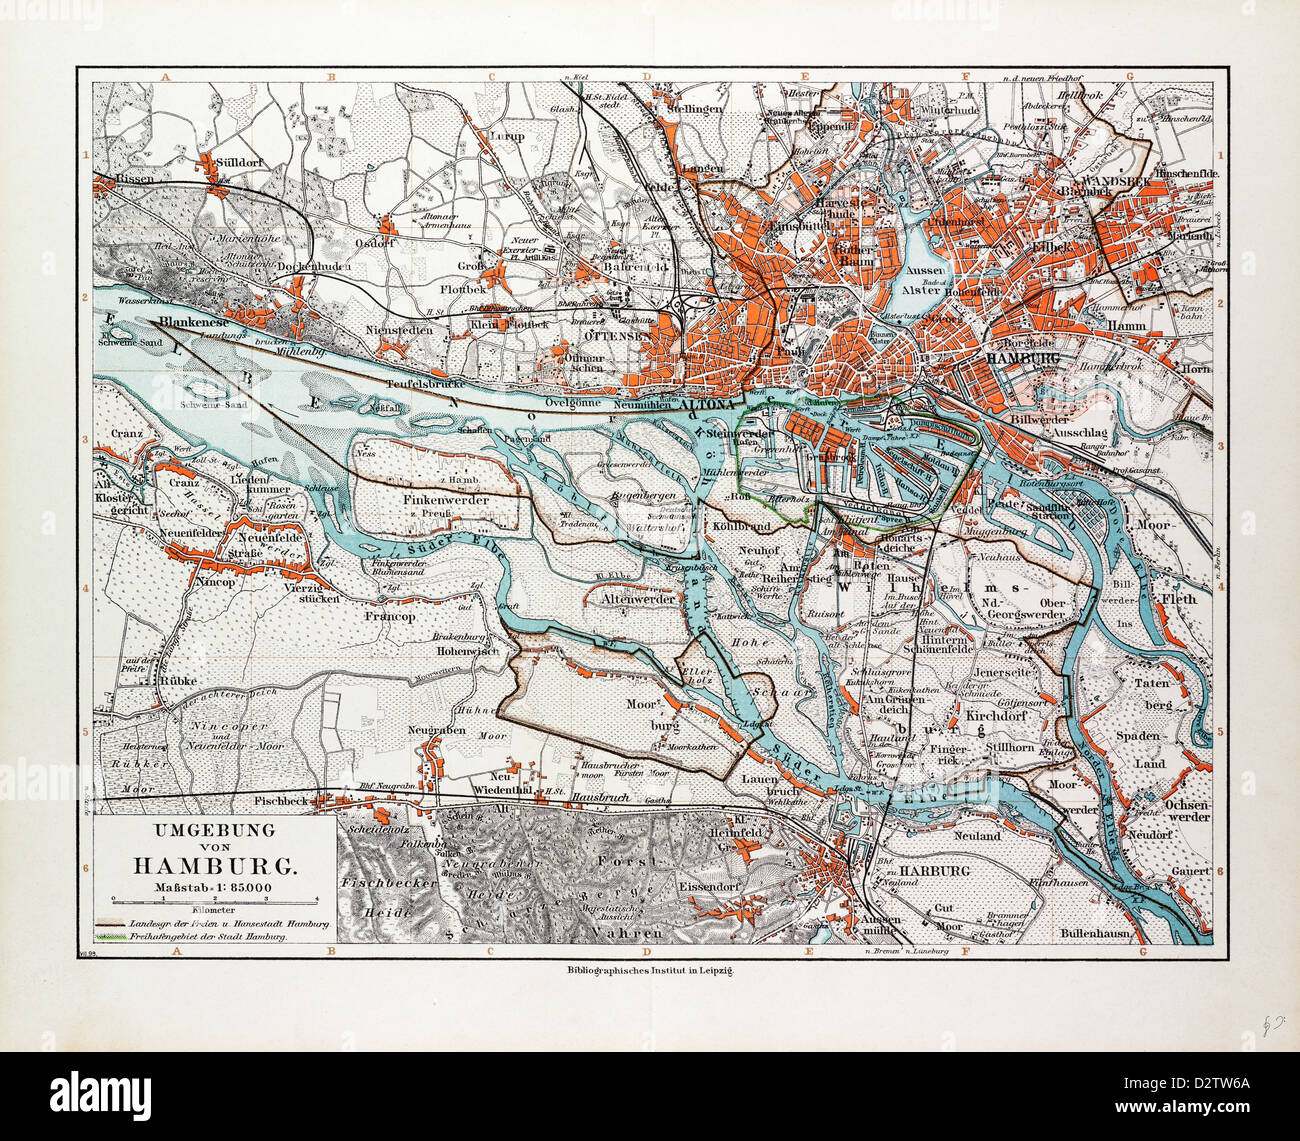 Map Of Hamburg And The Surrounding Area Germany 1899 Stock Photo